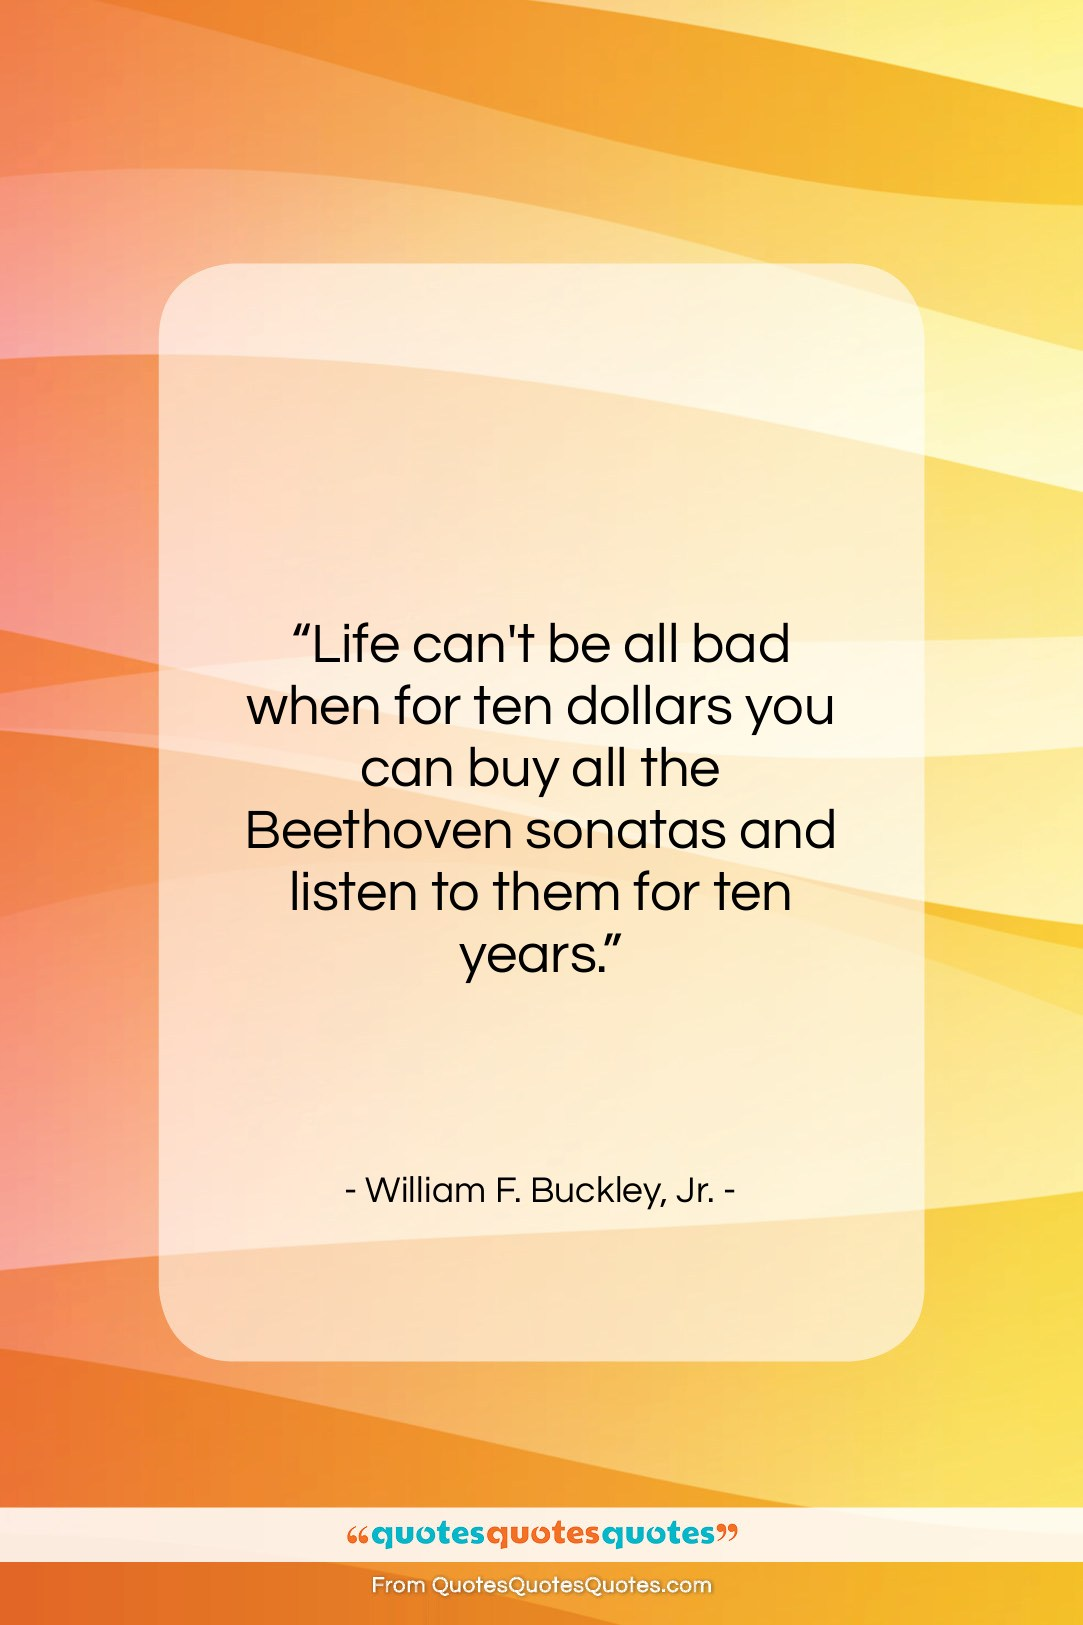 """William F. Buckley, Jr. quote: """"Life can't be all bad when for…""""- at QuotesQuotesQuotes.com"""